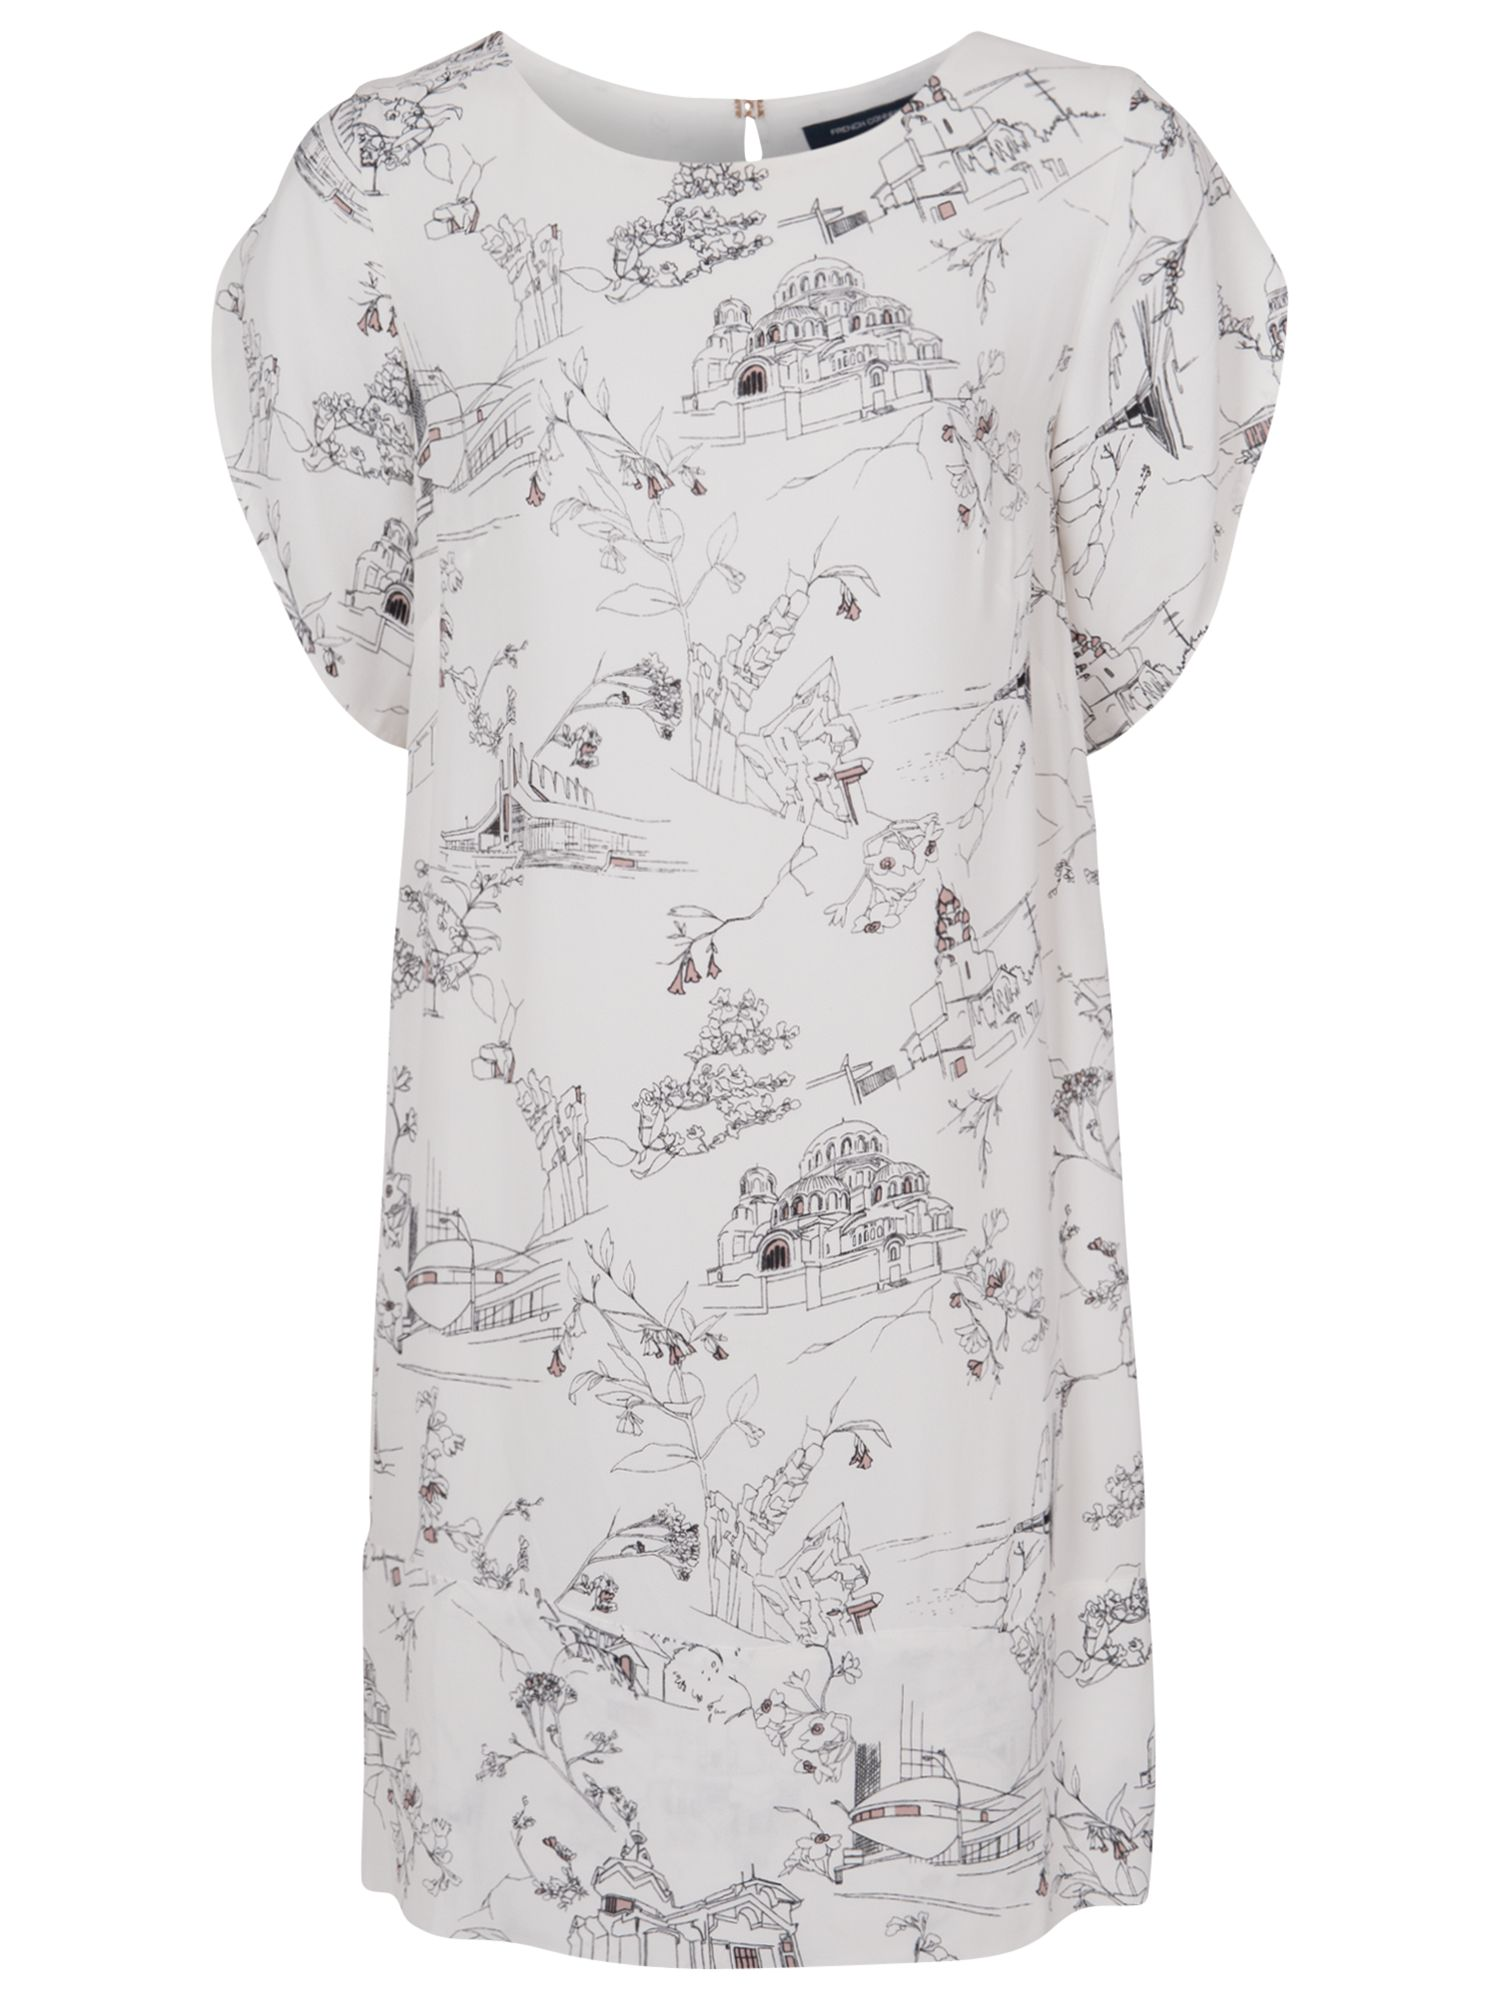 french connection anastasia crepe tunic dress winter white multi, french, connection, anastasia, crepe, tunic, dress, winter, white, multi, french connection, 10|8, clearance, womenswear offers, womens dresses offers, women, inactive womenswear, new reductions, womens dresses, special offers, 1667162